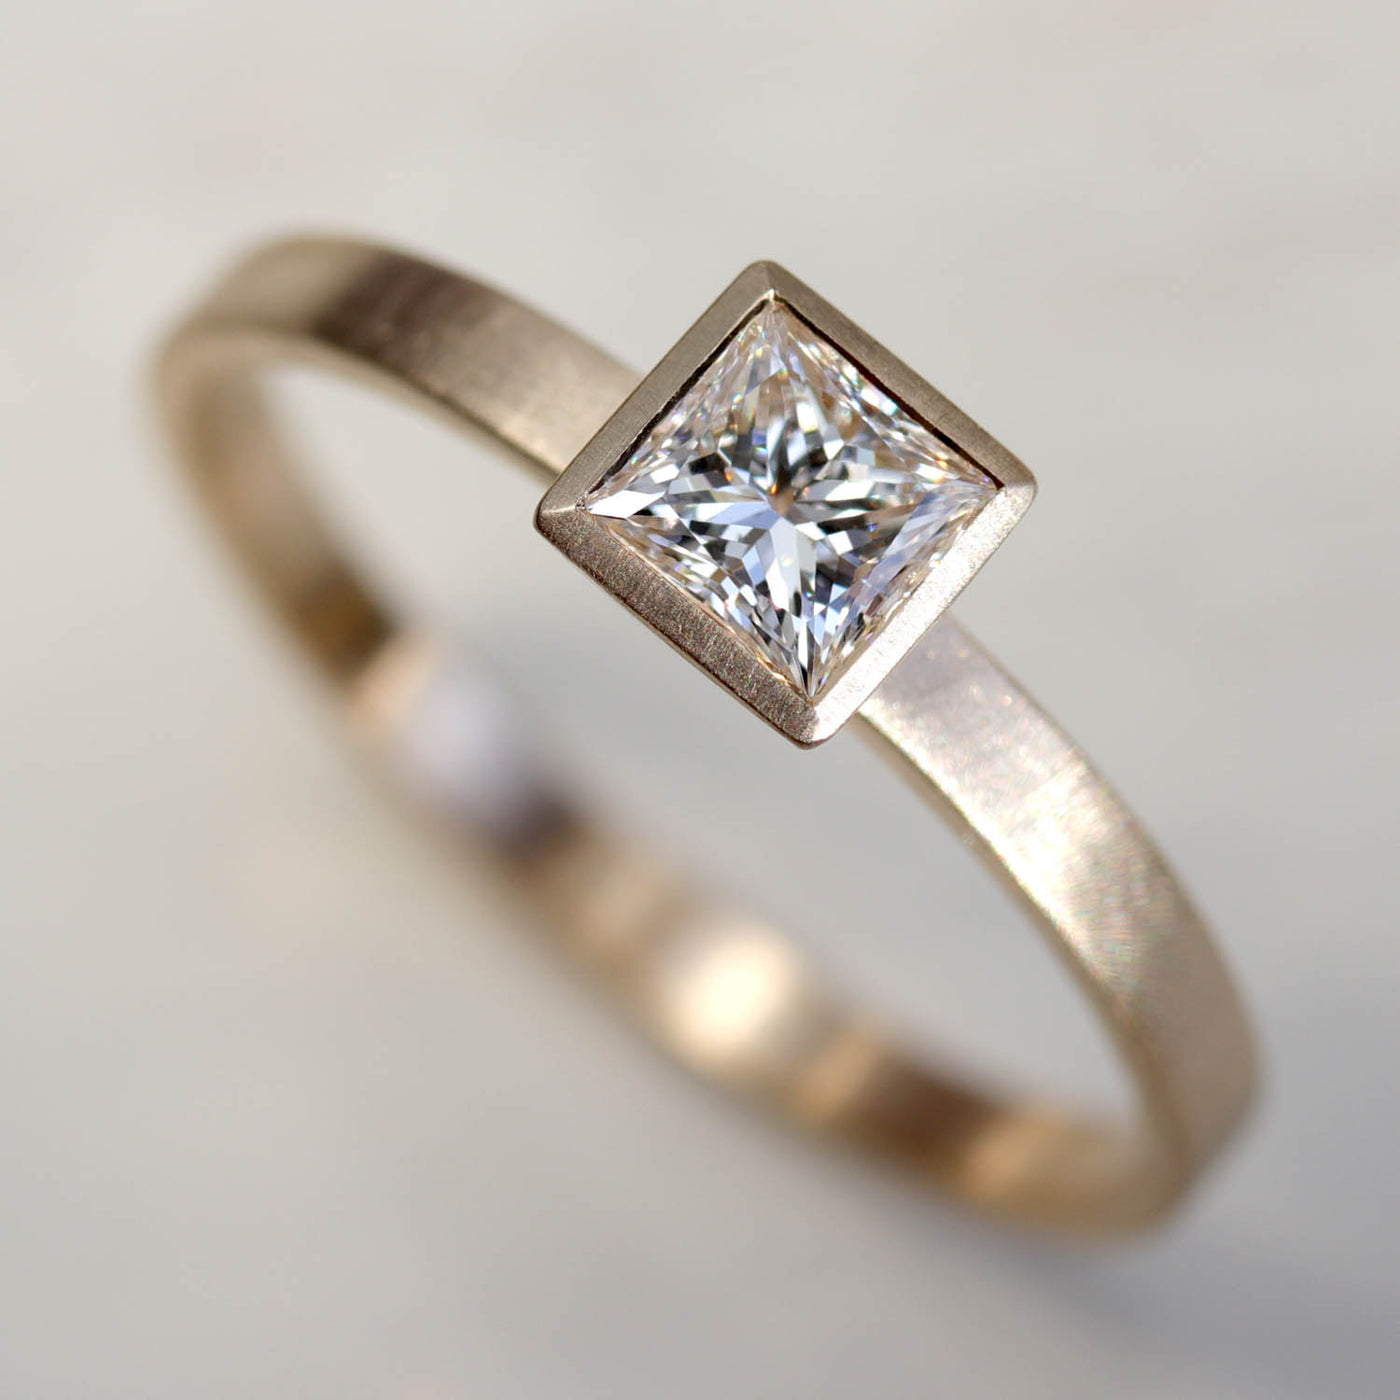 4mm Square Solitaire Engagement Ring •